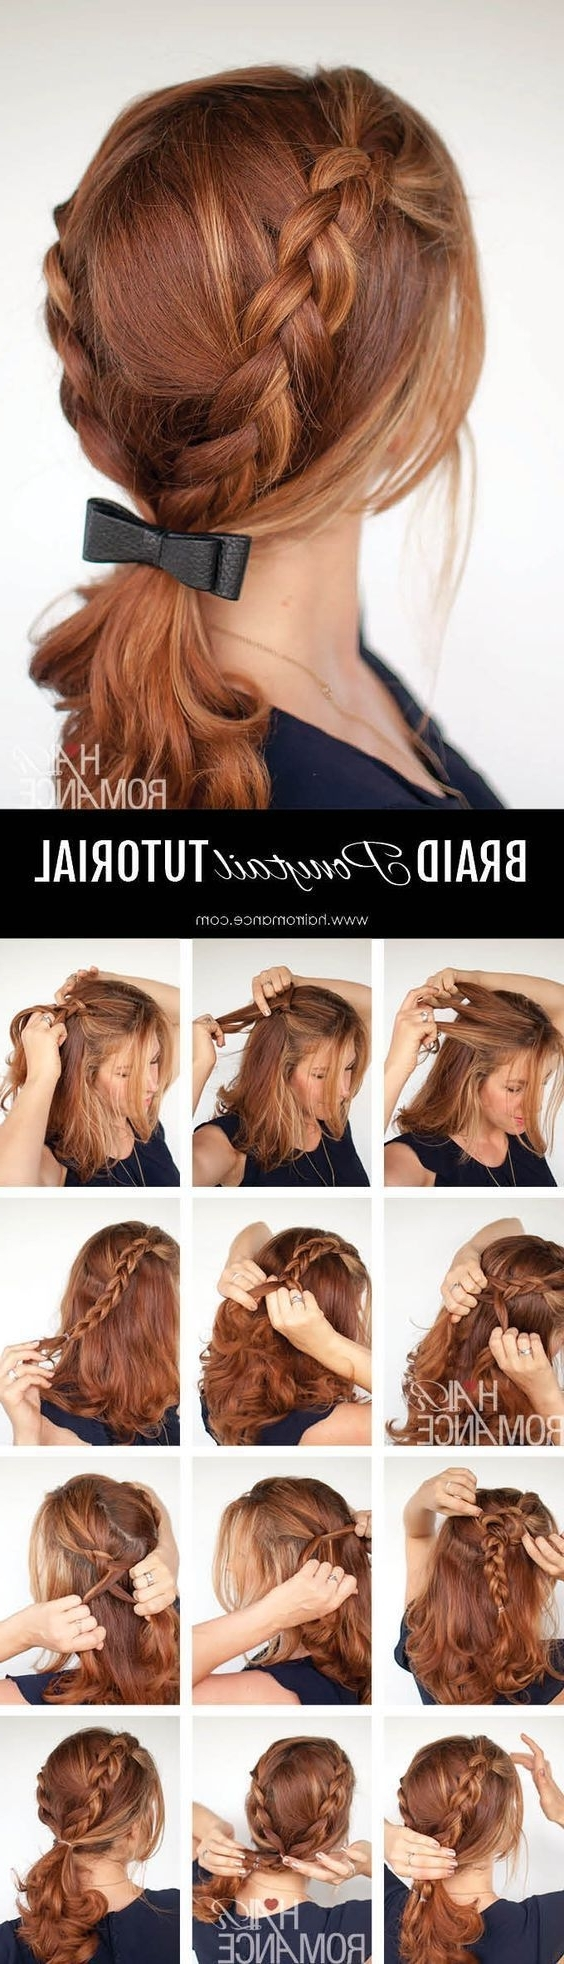 15 Ways To Style Your Lobs (Long Bob Hairstyle Ideas) – Pretty Designs In Recent Braided Lob Hairstyles (View 1 of 15)